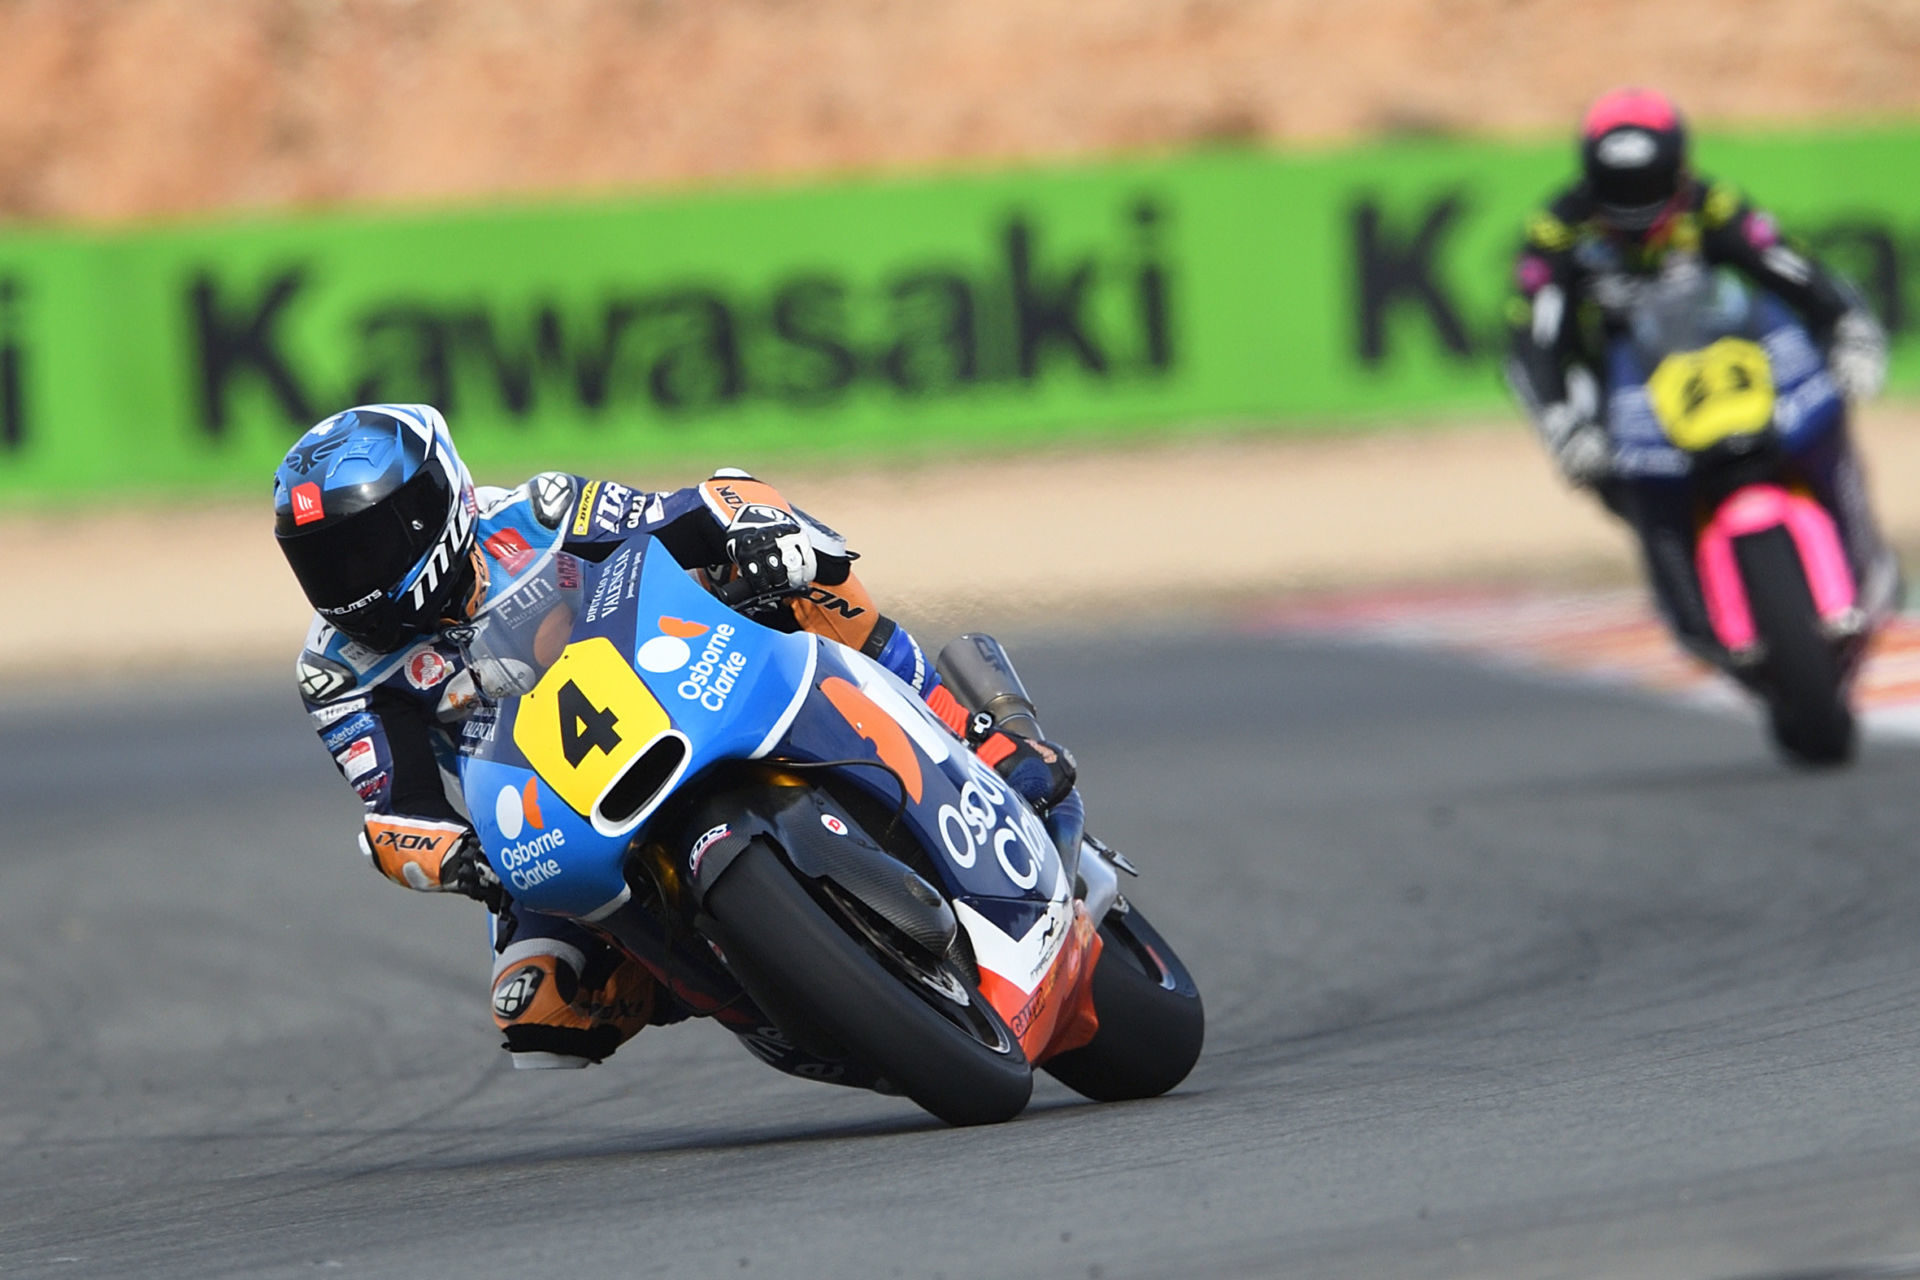 Hector Garzo (4). Photo courtesy of FIM CEV Repsol Press Office.